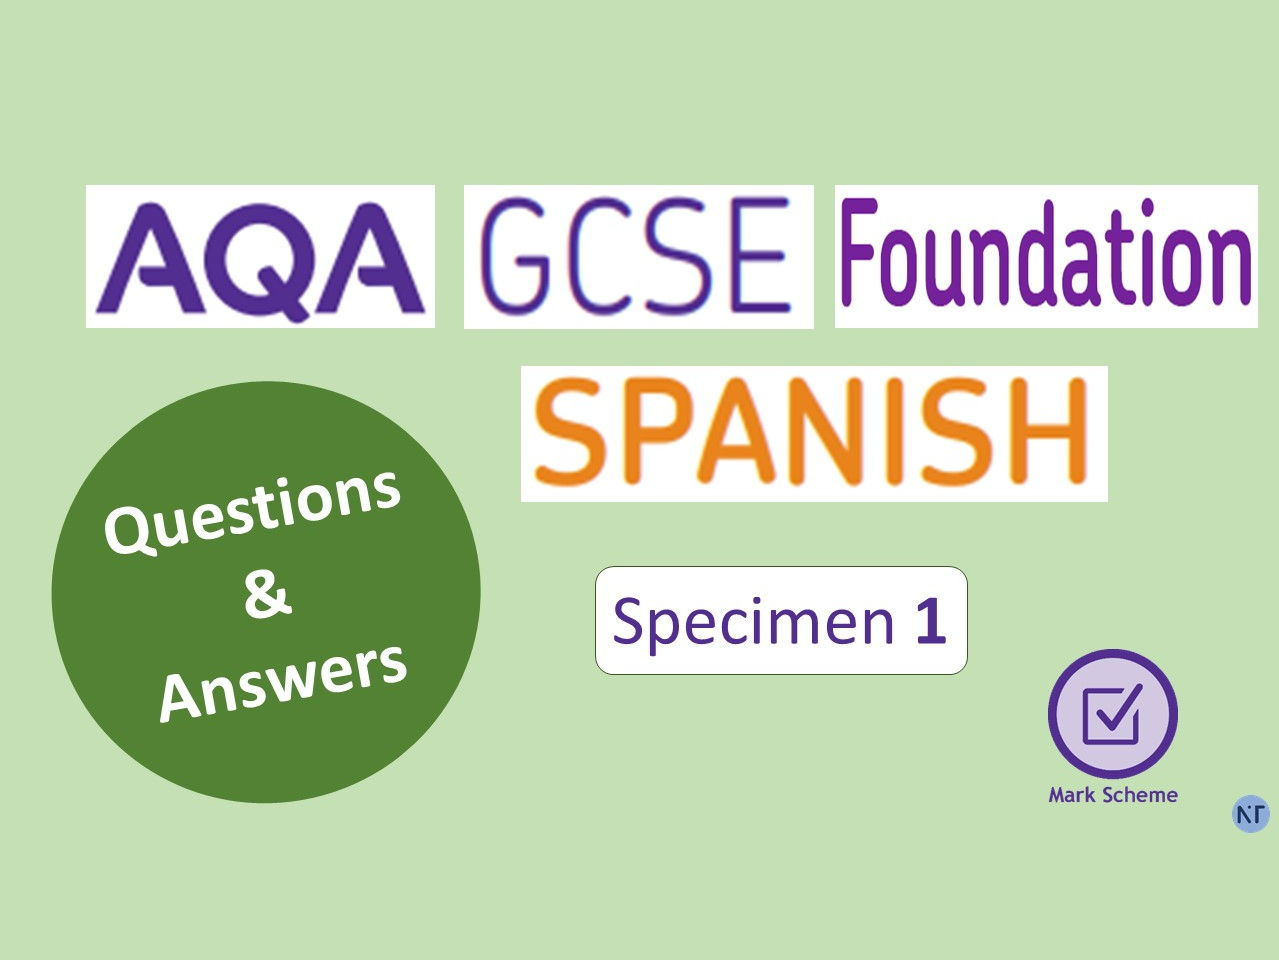 GCSE Foundation Specimen 1: Papers 1,2,3, 4